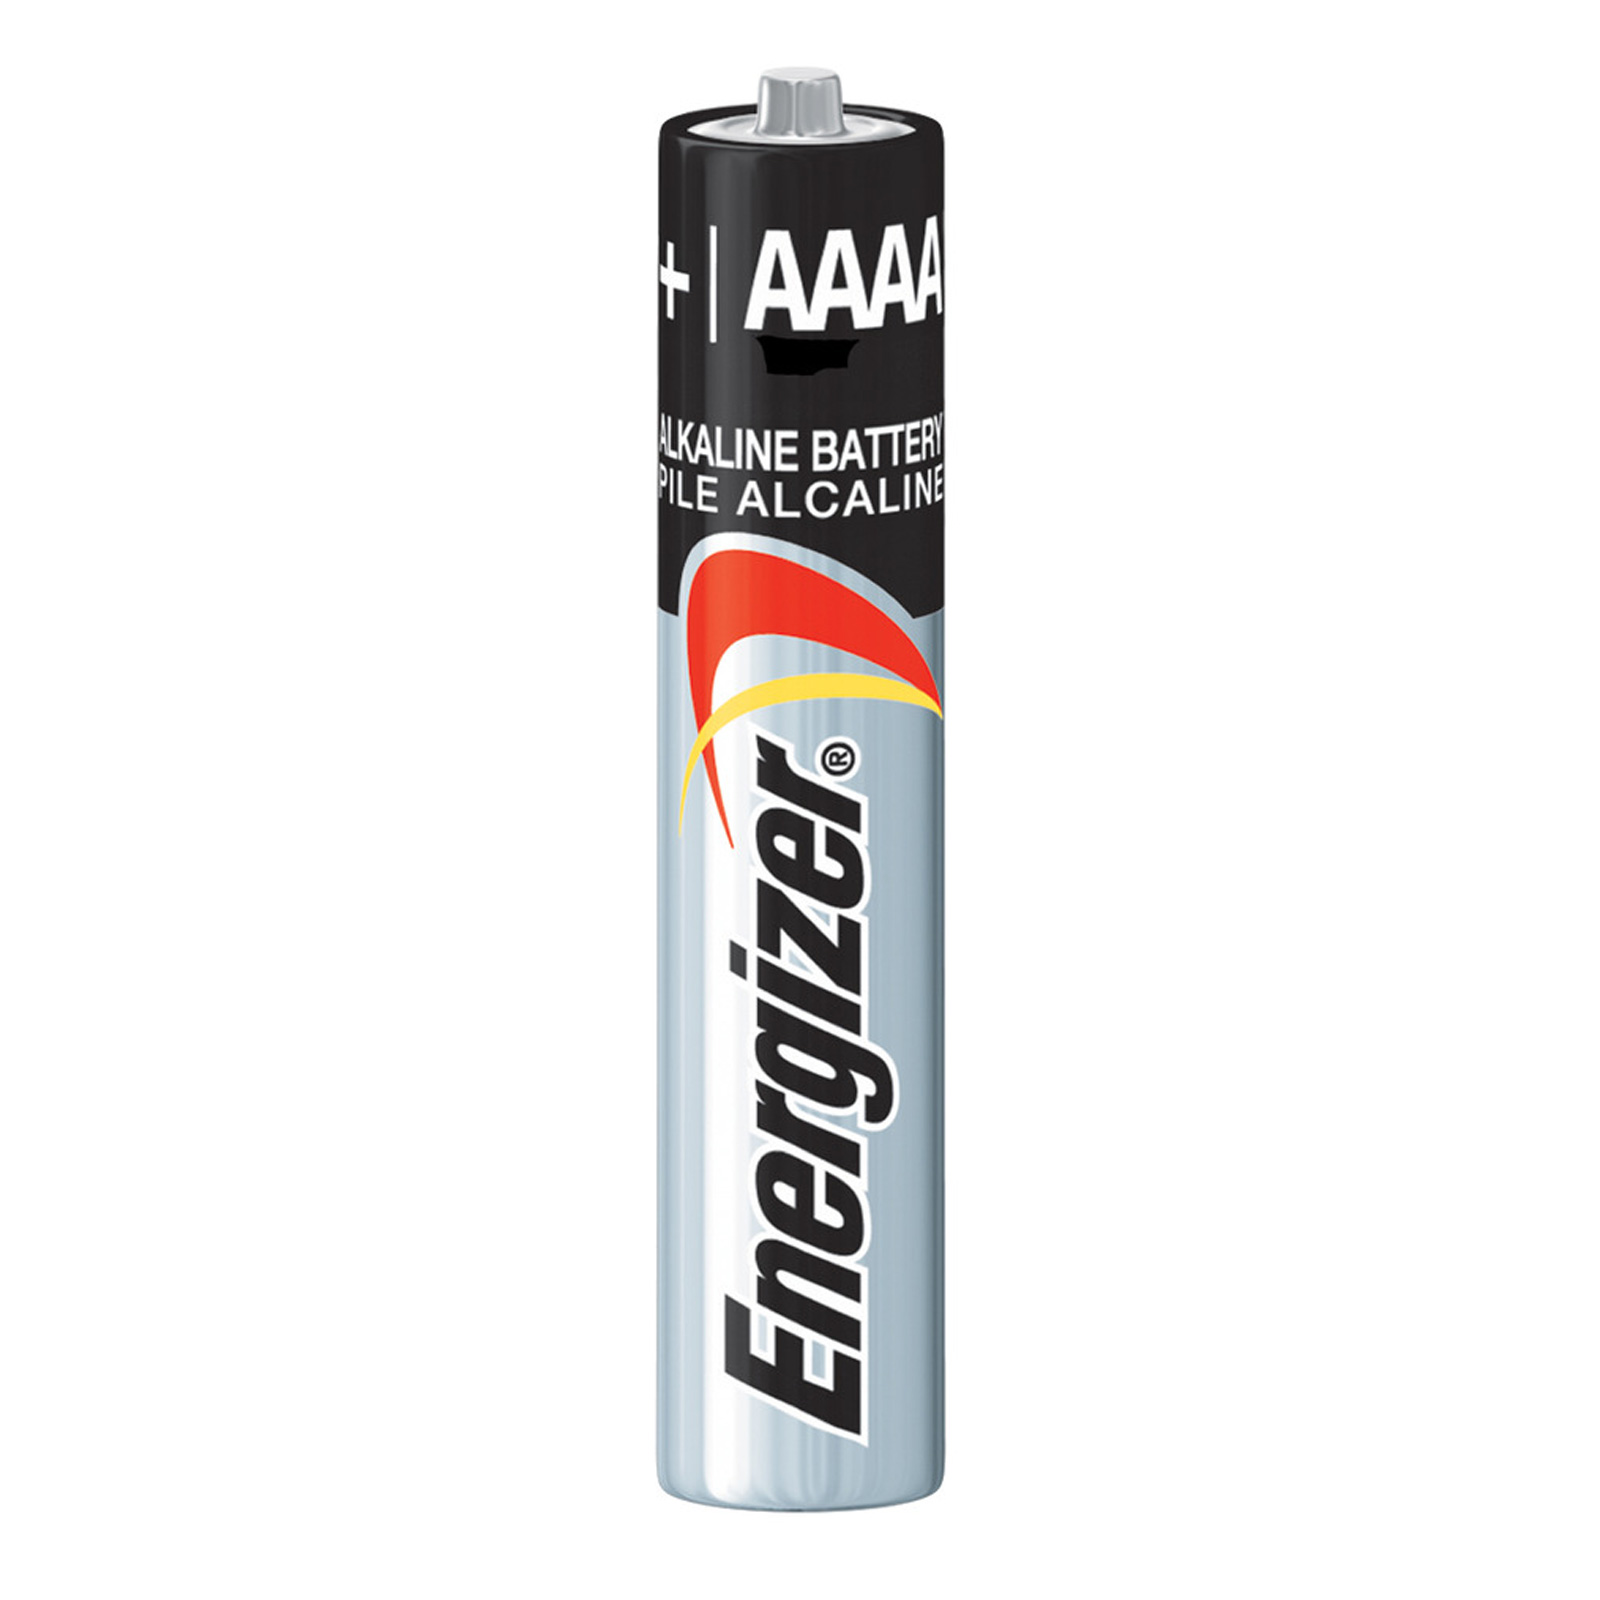 Energizer e96 15v alkaline battery aaaa replaces lr8d425 mn2500 energizer e96 15v alkaline battery aaaa replaces lr8d425 mn2500 fast usa ship fandeluxe Choice Image